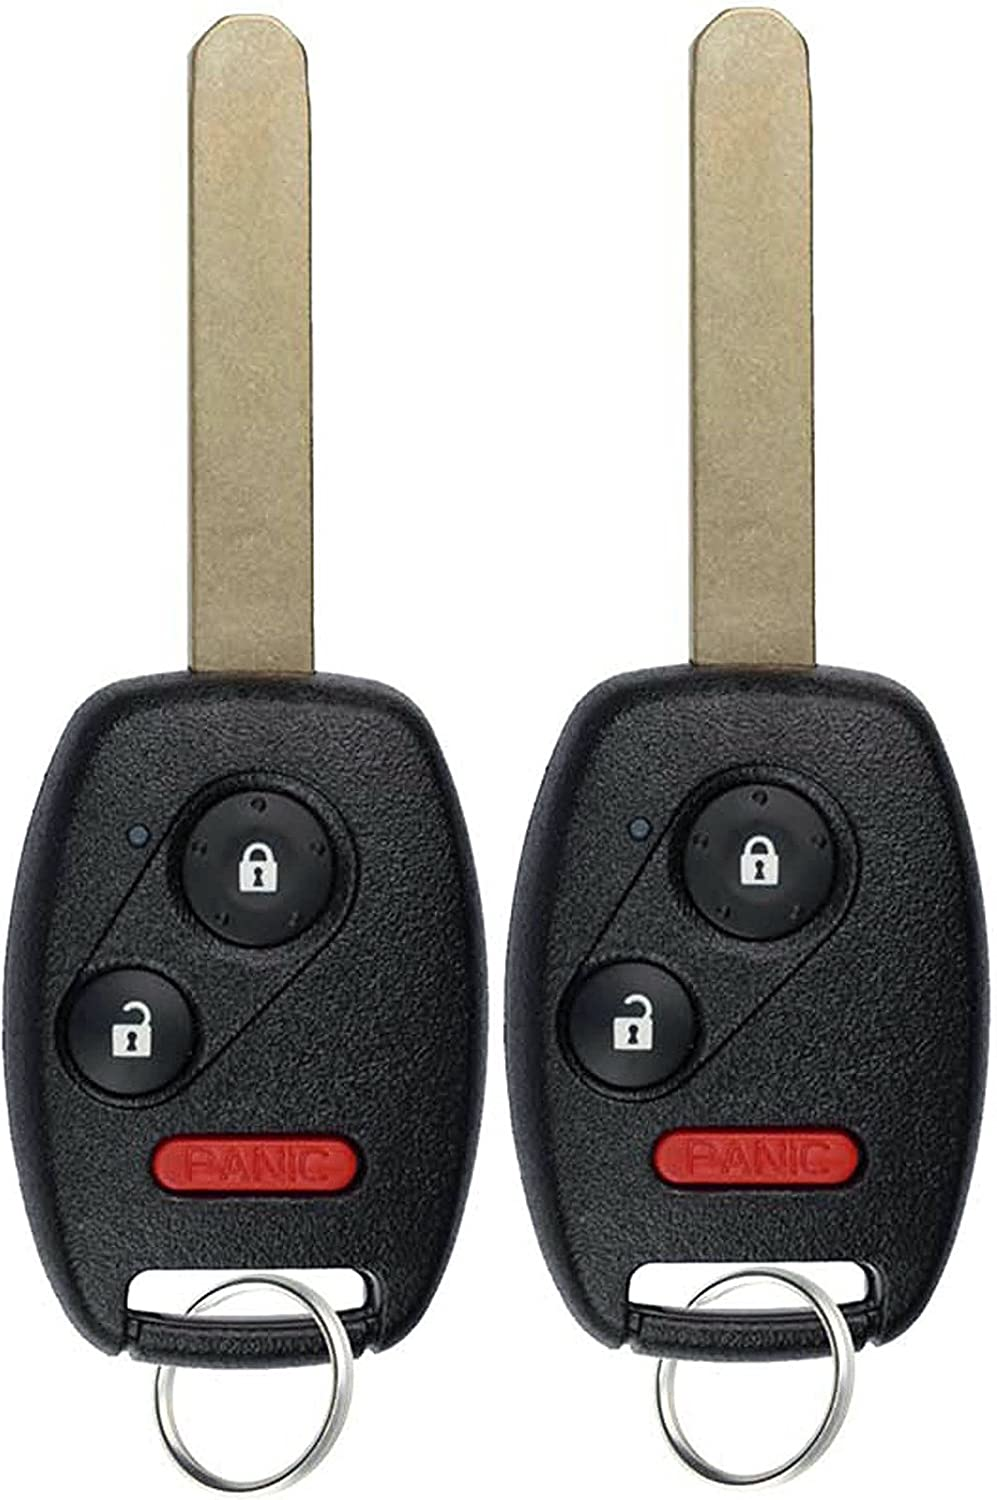 KeylessOption Keyless Entry Remote Control Uncut Car Ignition Key Fob Replacement for MLBHLIK-1T (Pack of 2)